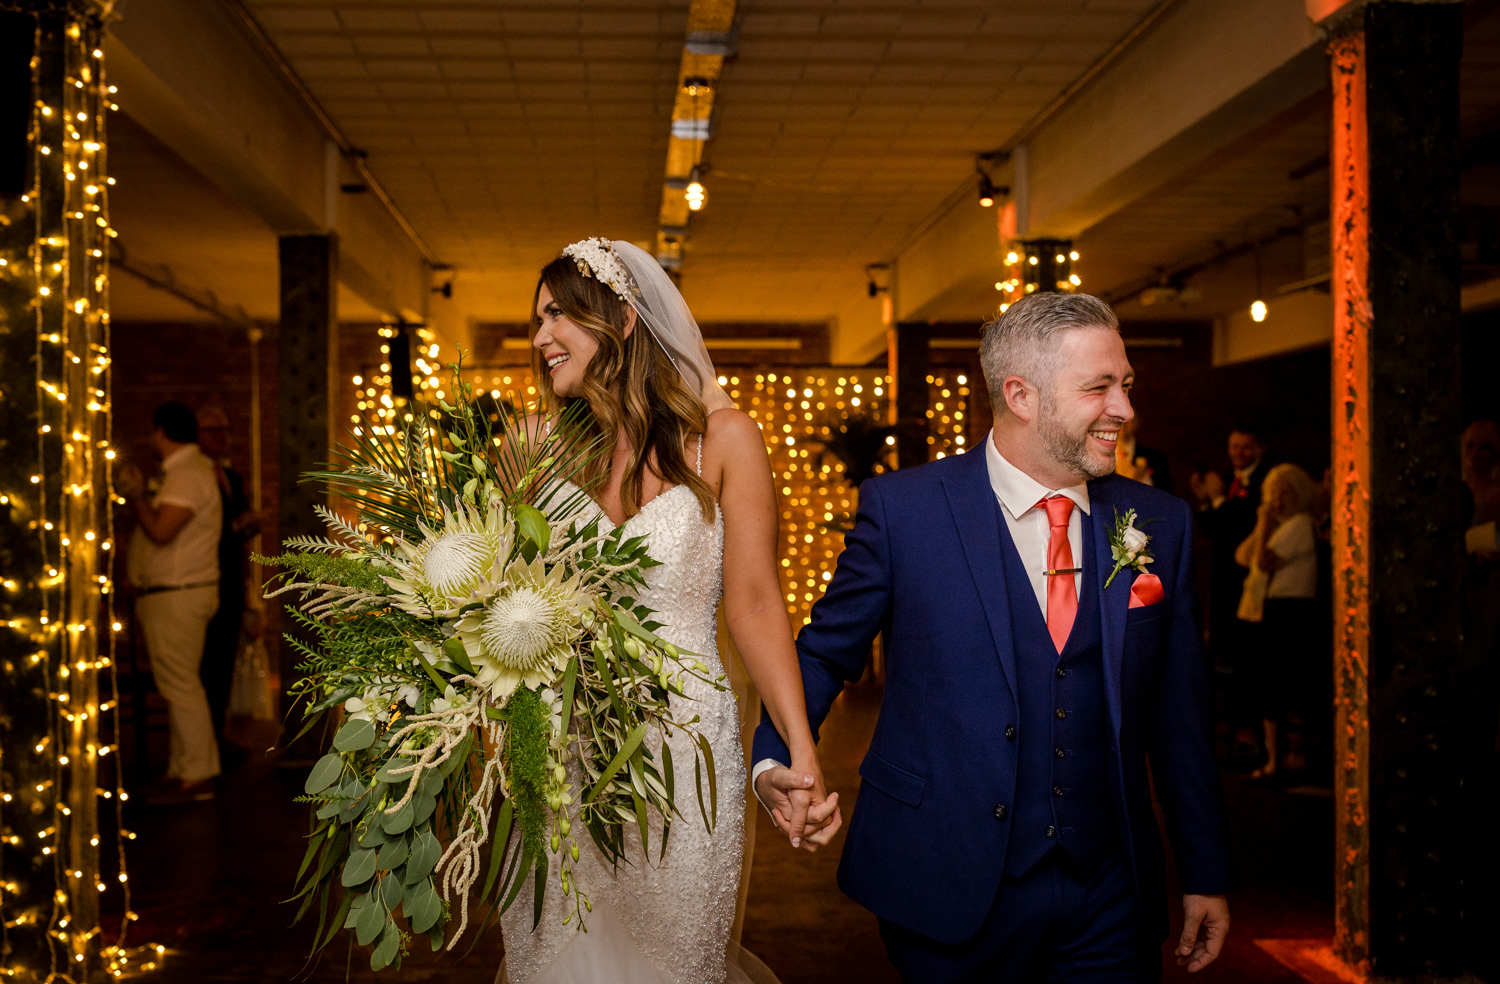 Bride and groom walk down the aisle at Victoria Warehouse